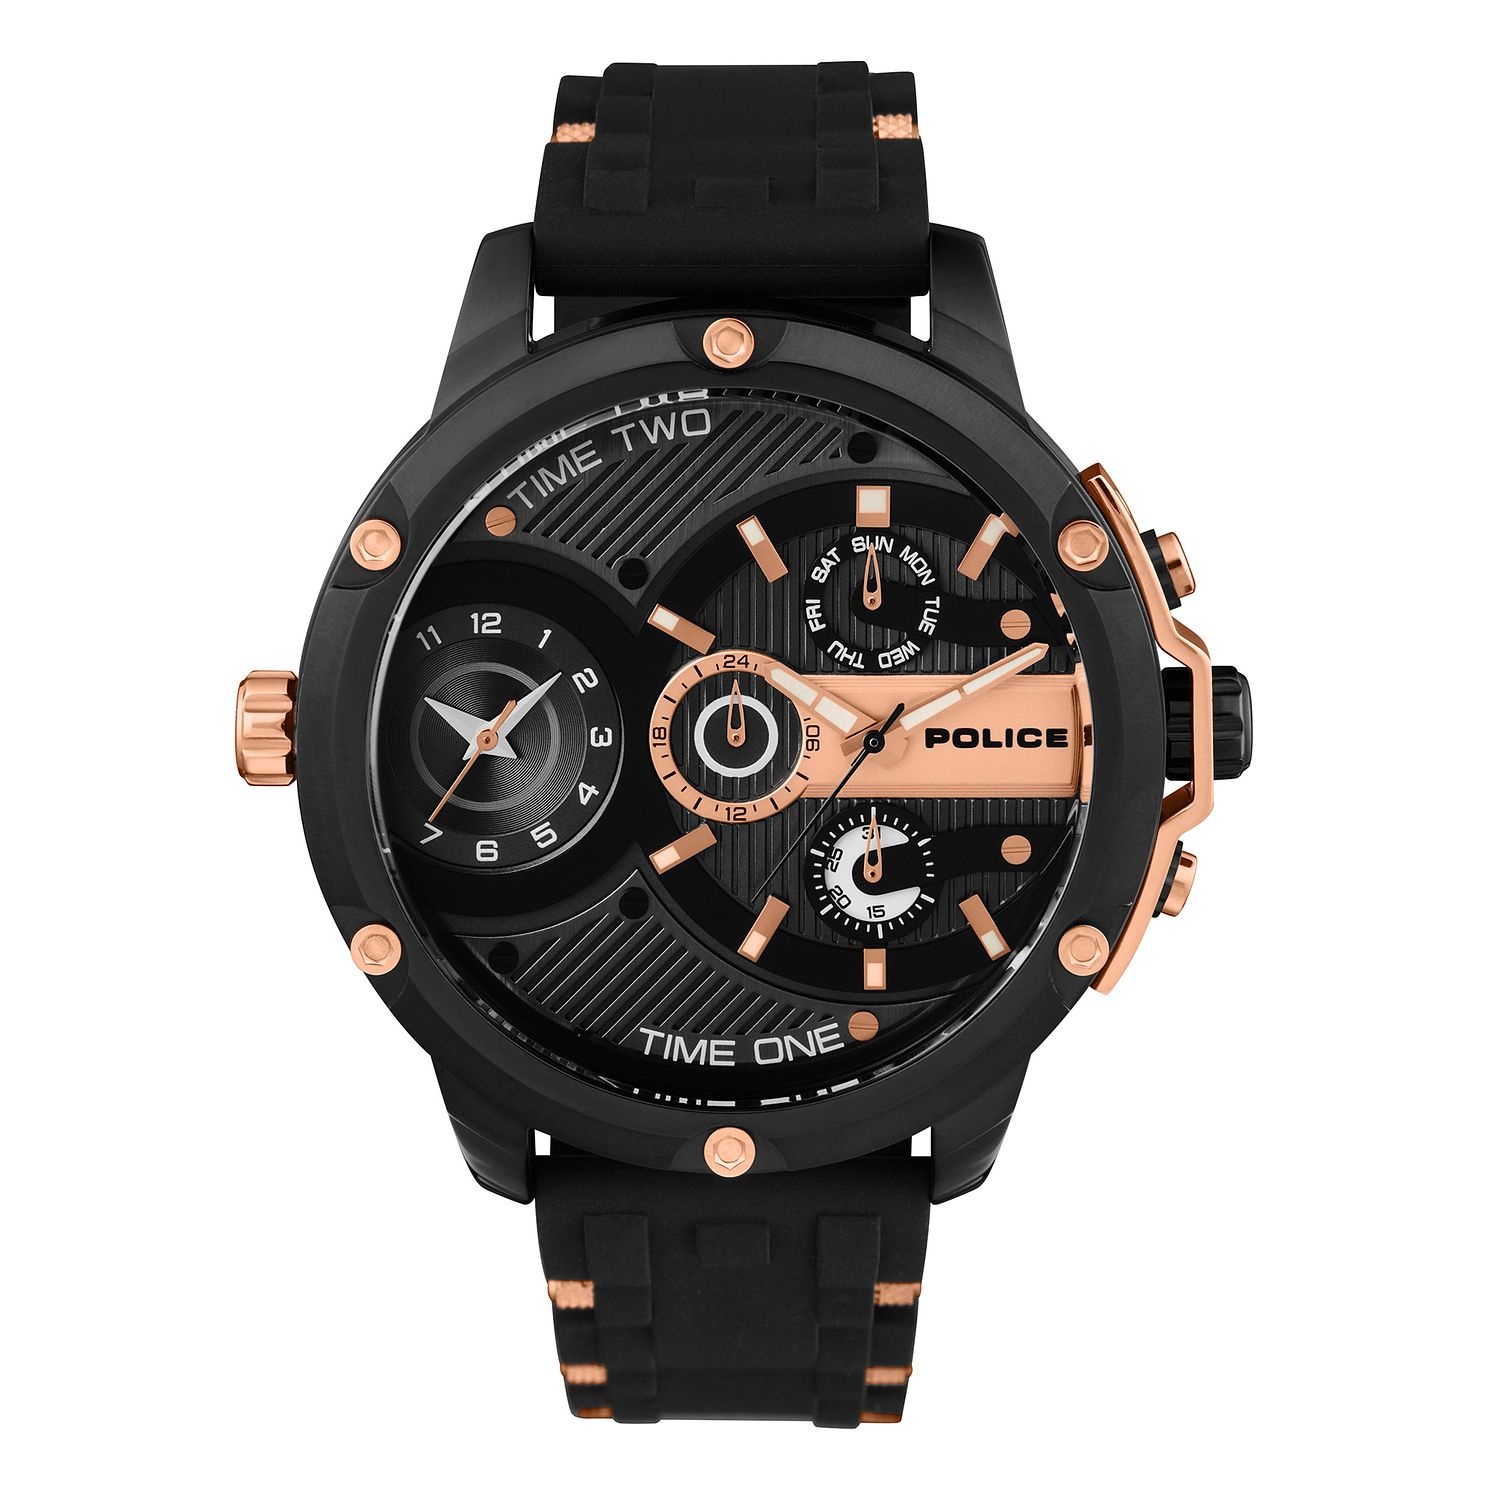 Police Leader Men's Black Silicone Strap Watch - Product number 1084003